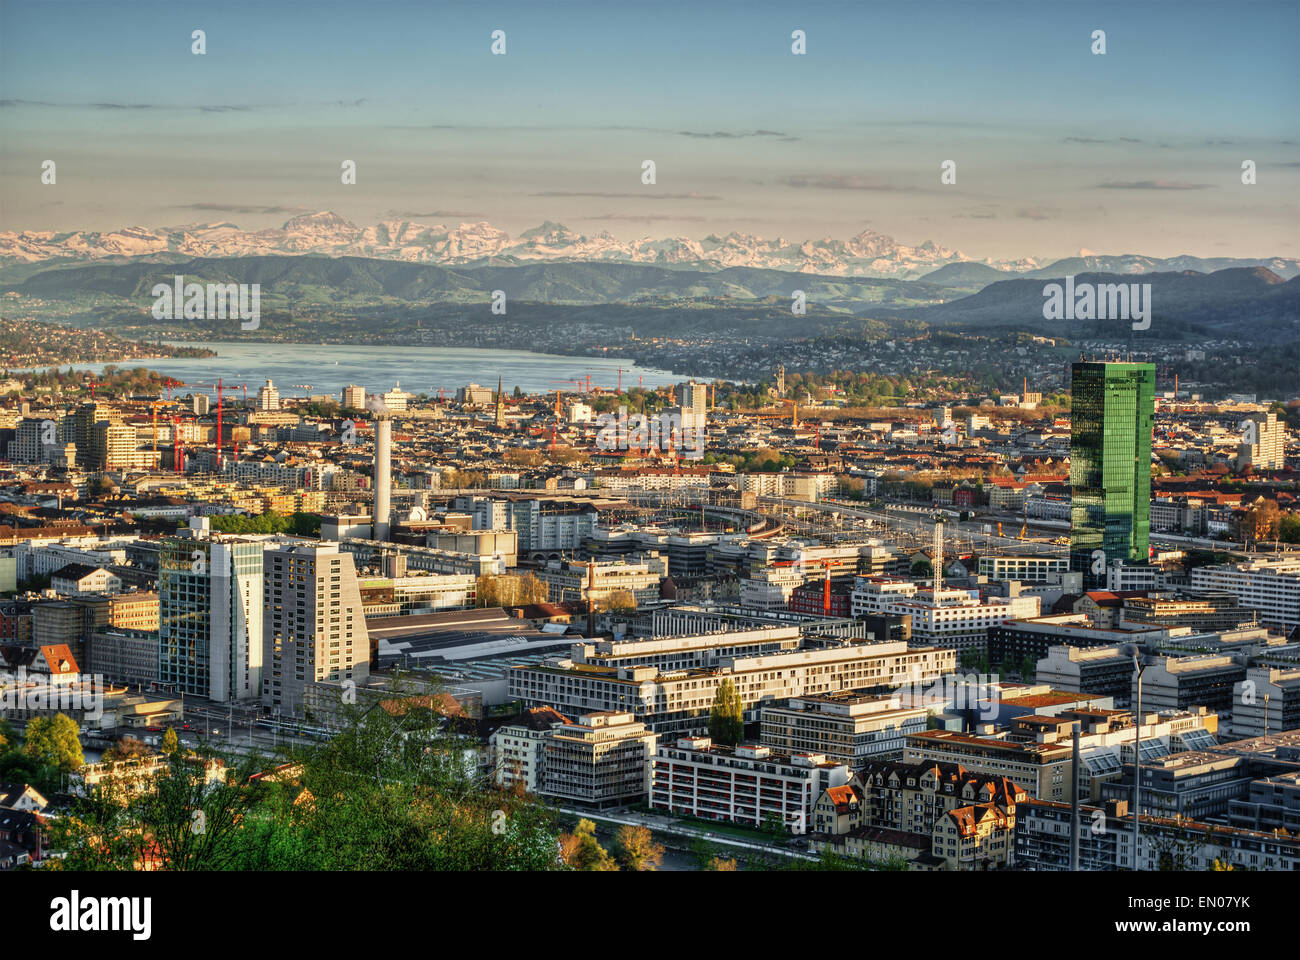 April 2015, town of Zurich (Switzerland), HDR-technique - Stock Image